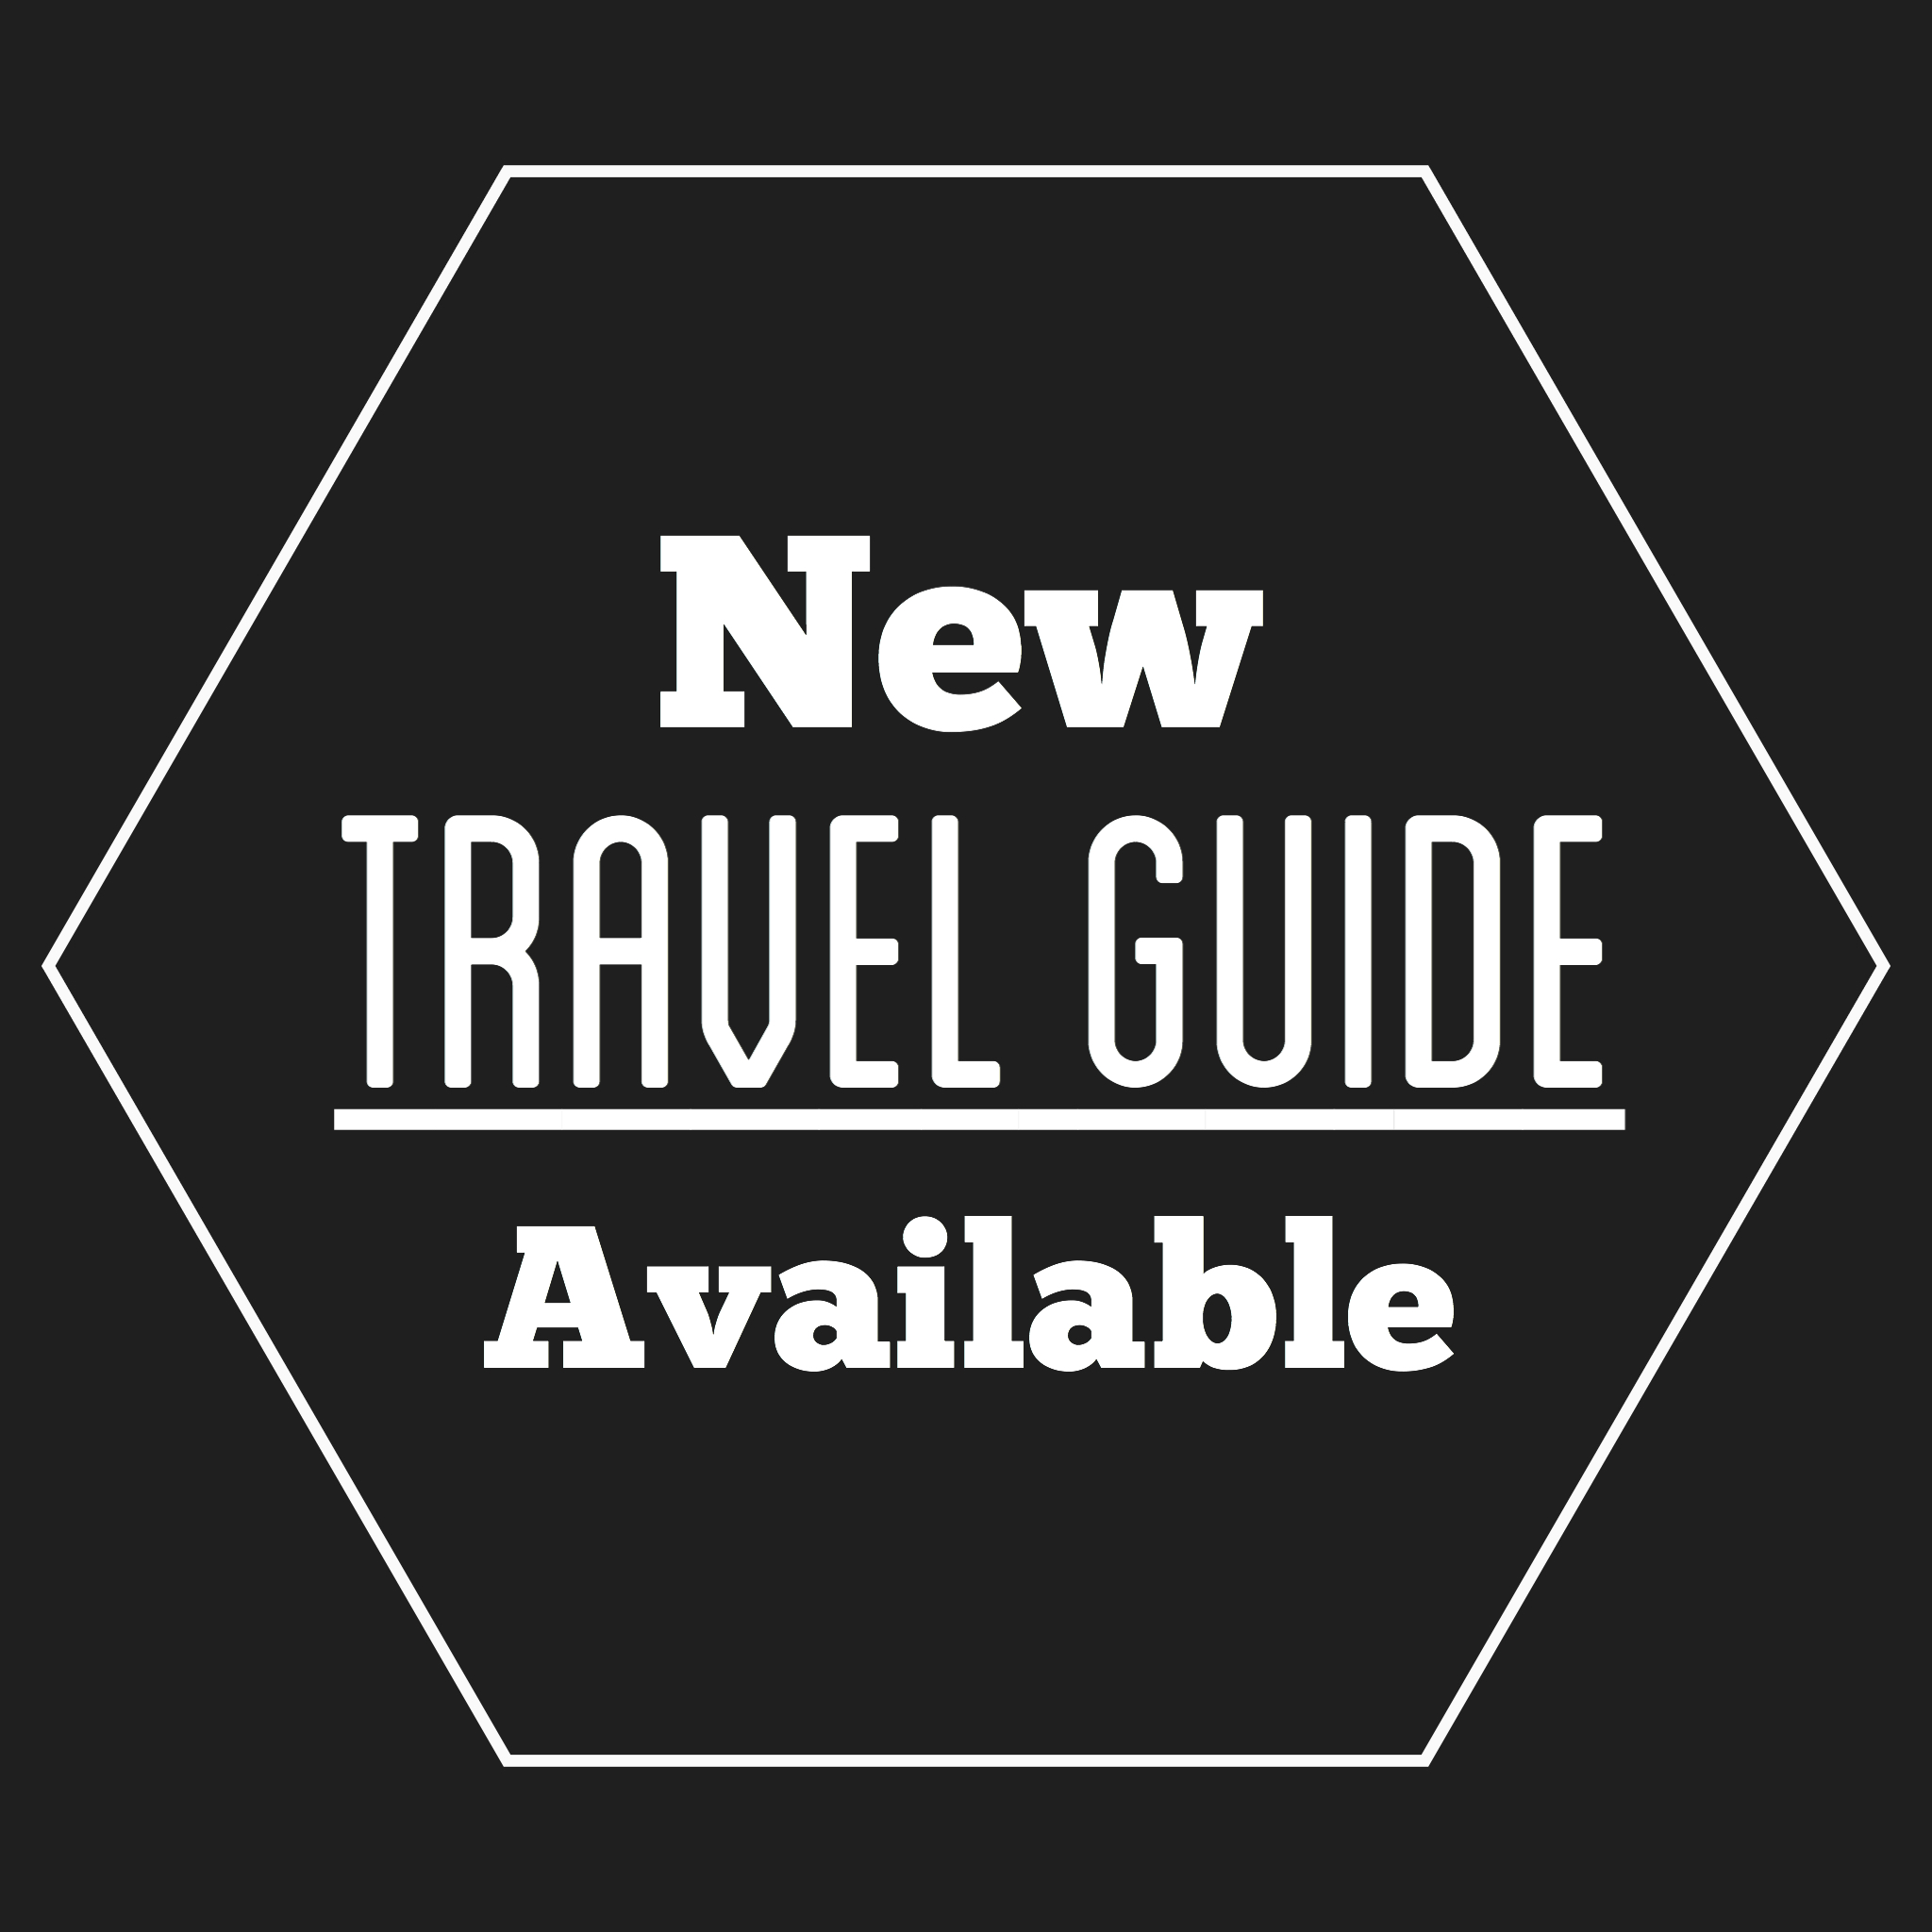 The Toronto City Guide is Now Available!